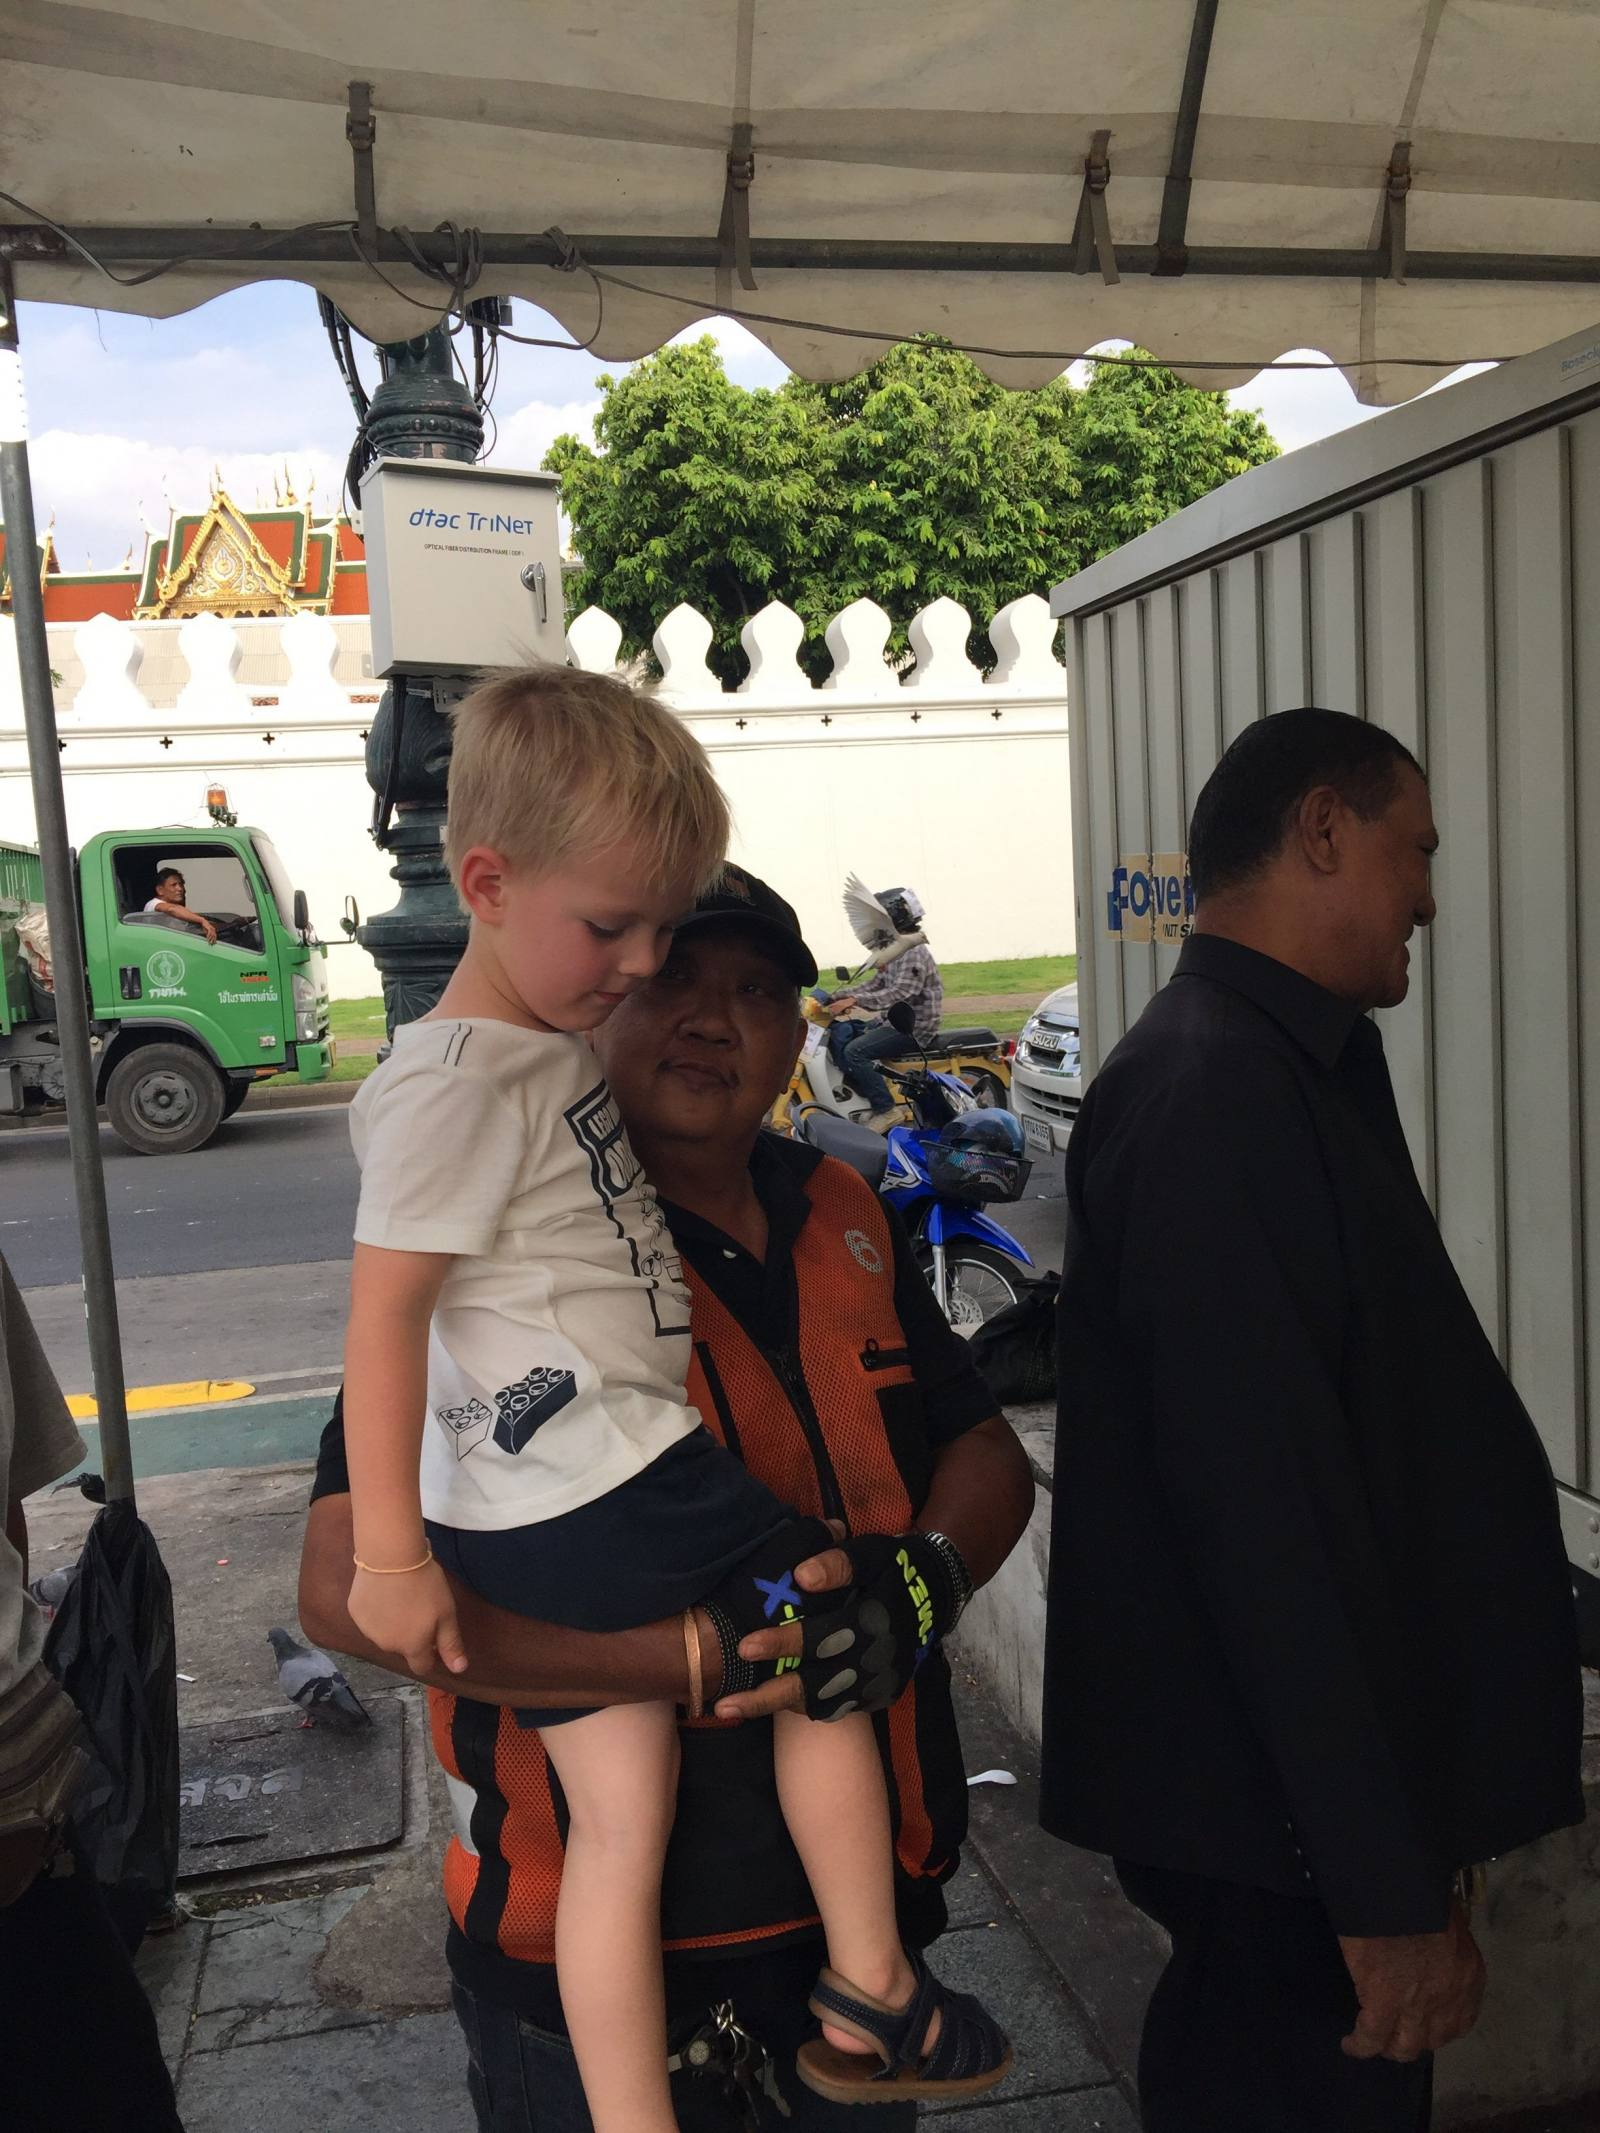 thai people love blonde headed children but there's nothing sinister to it